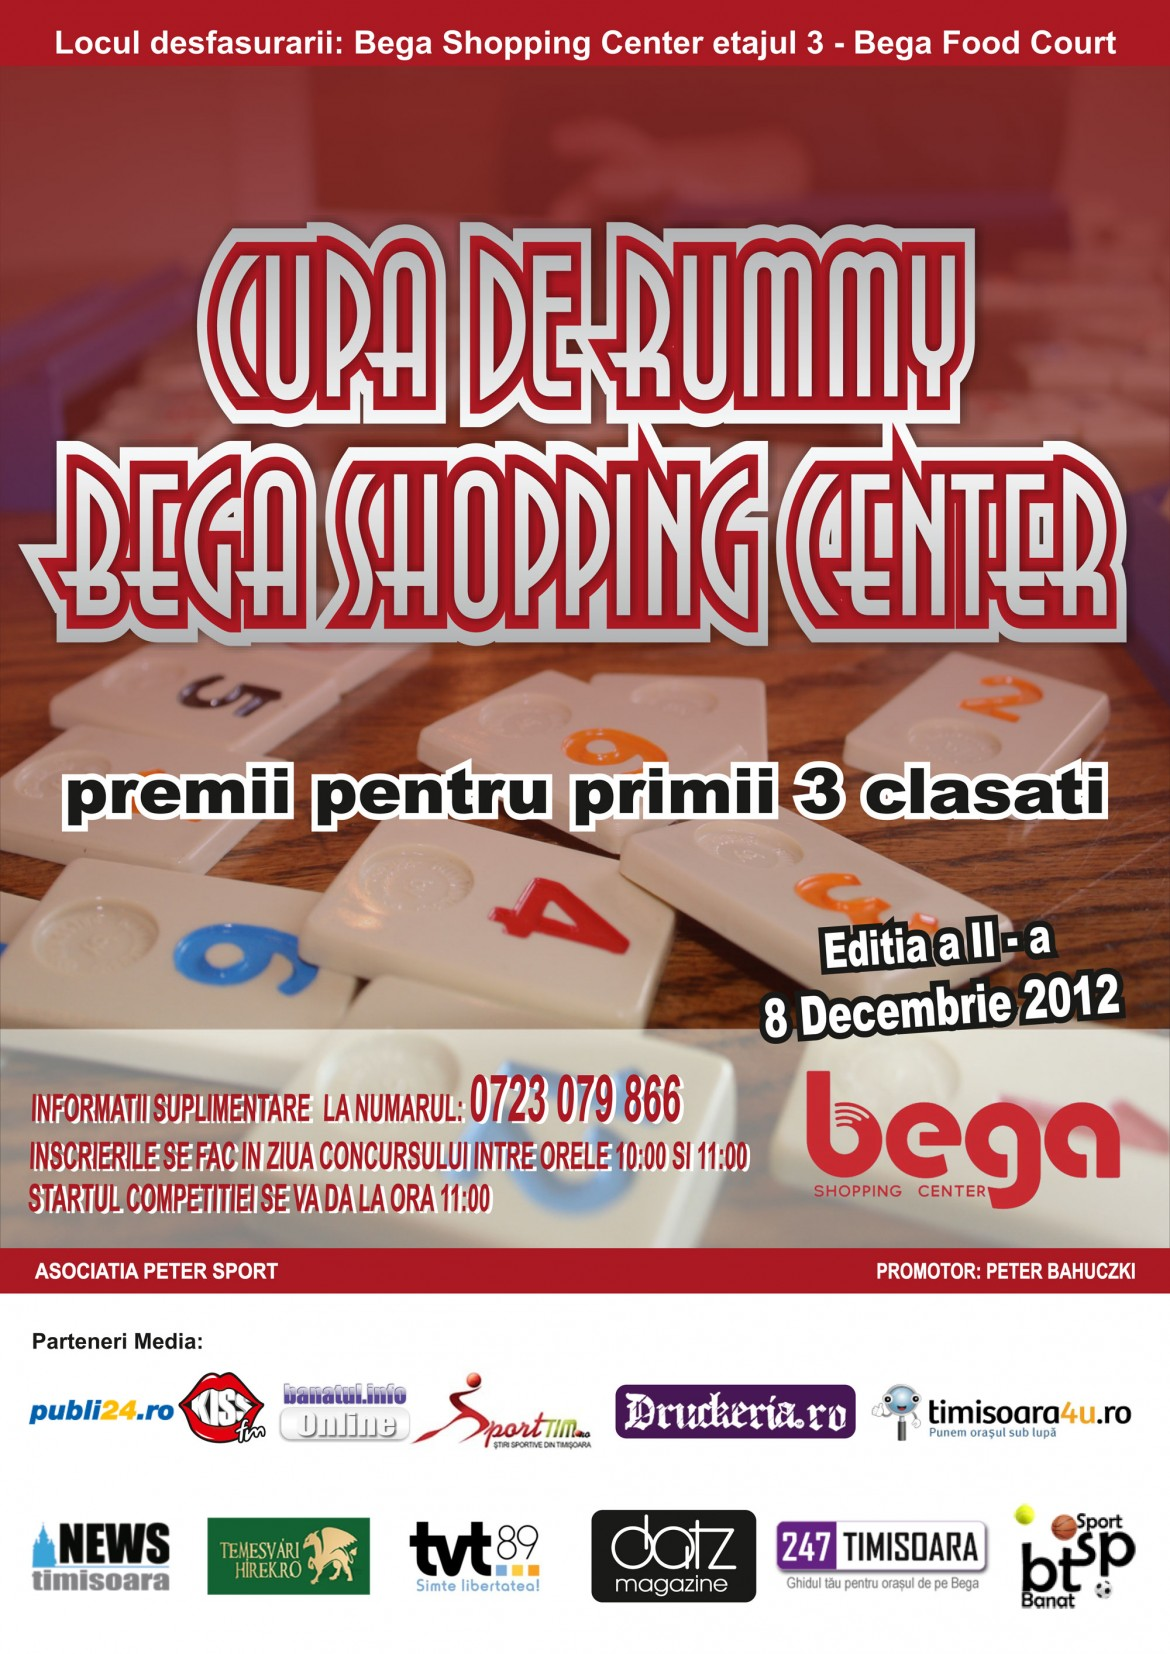 Cupa de Rummy Bega Shopping Center - editia a II-a